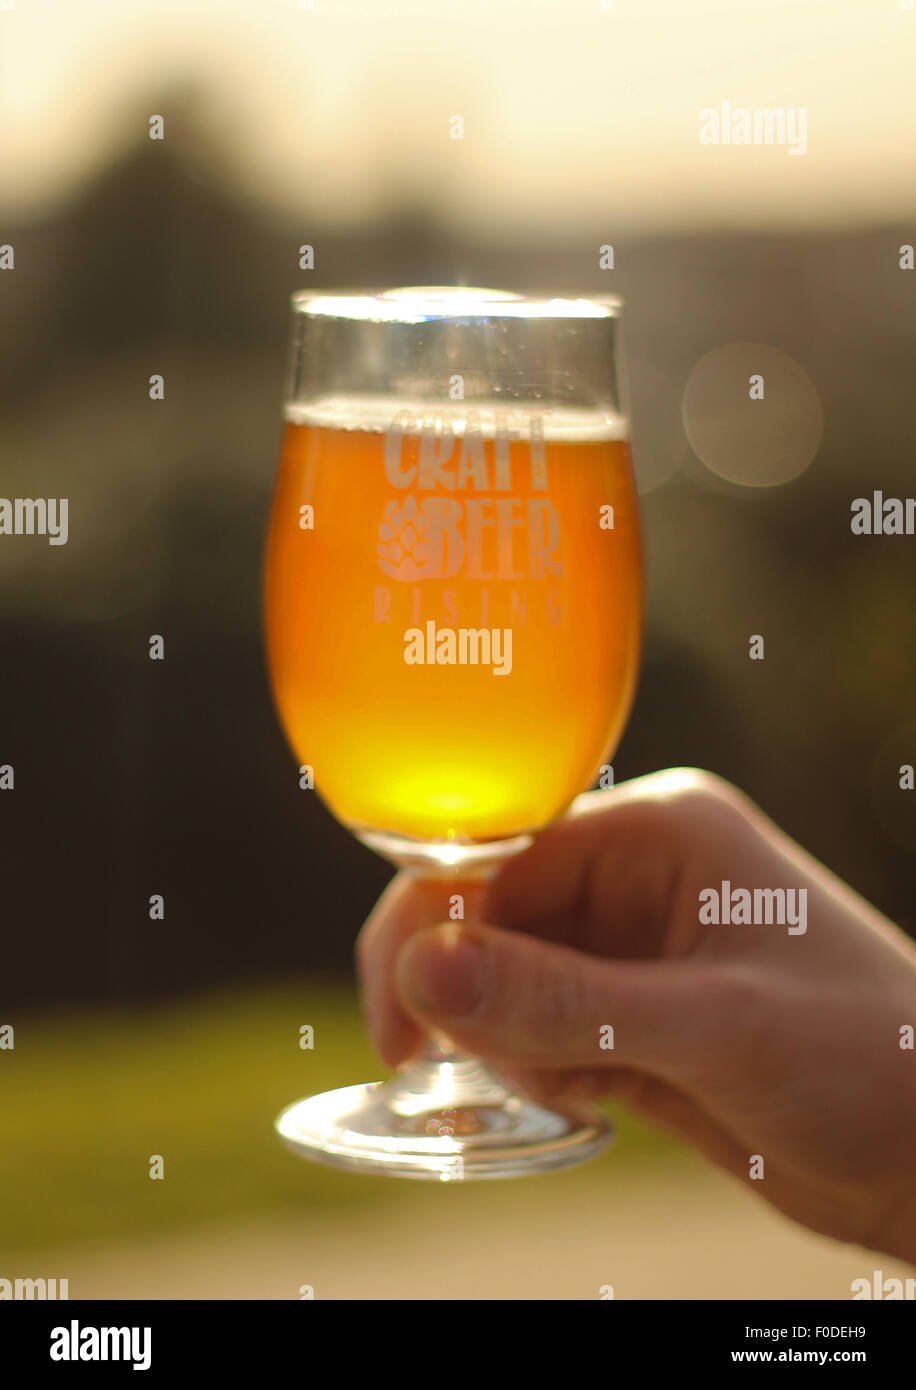 Home brewed all-grain IPA - Stock Image